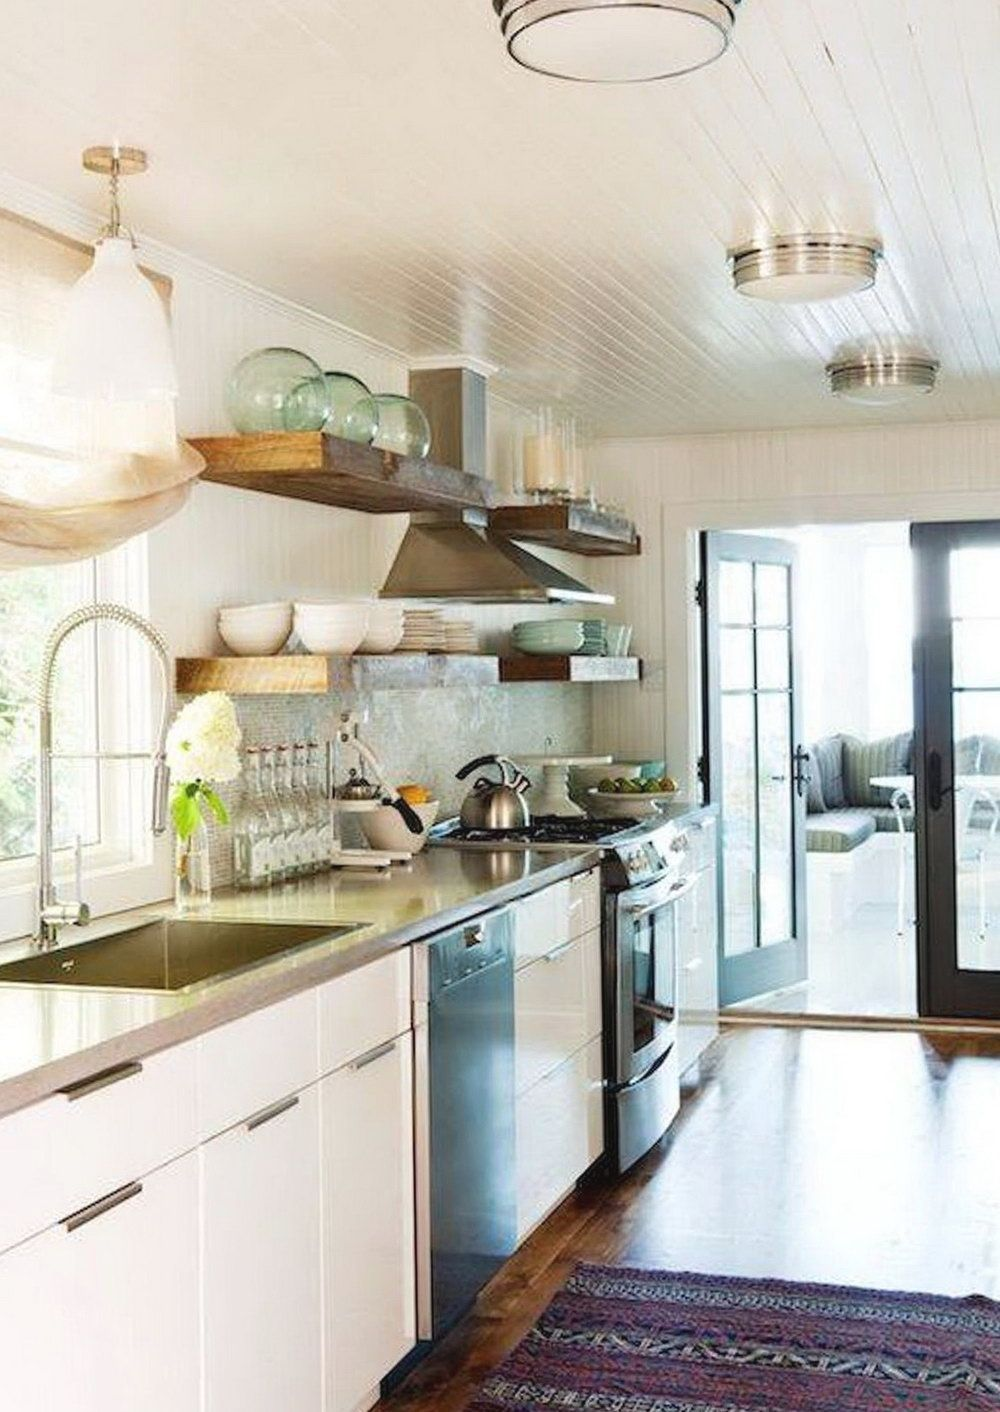 10 Easy Kitchen Lighting Fixture Projects To Complement The ...